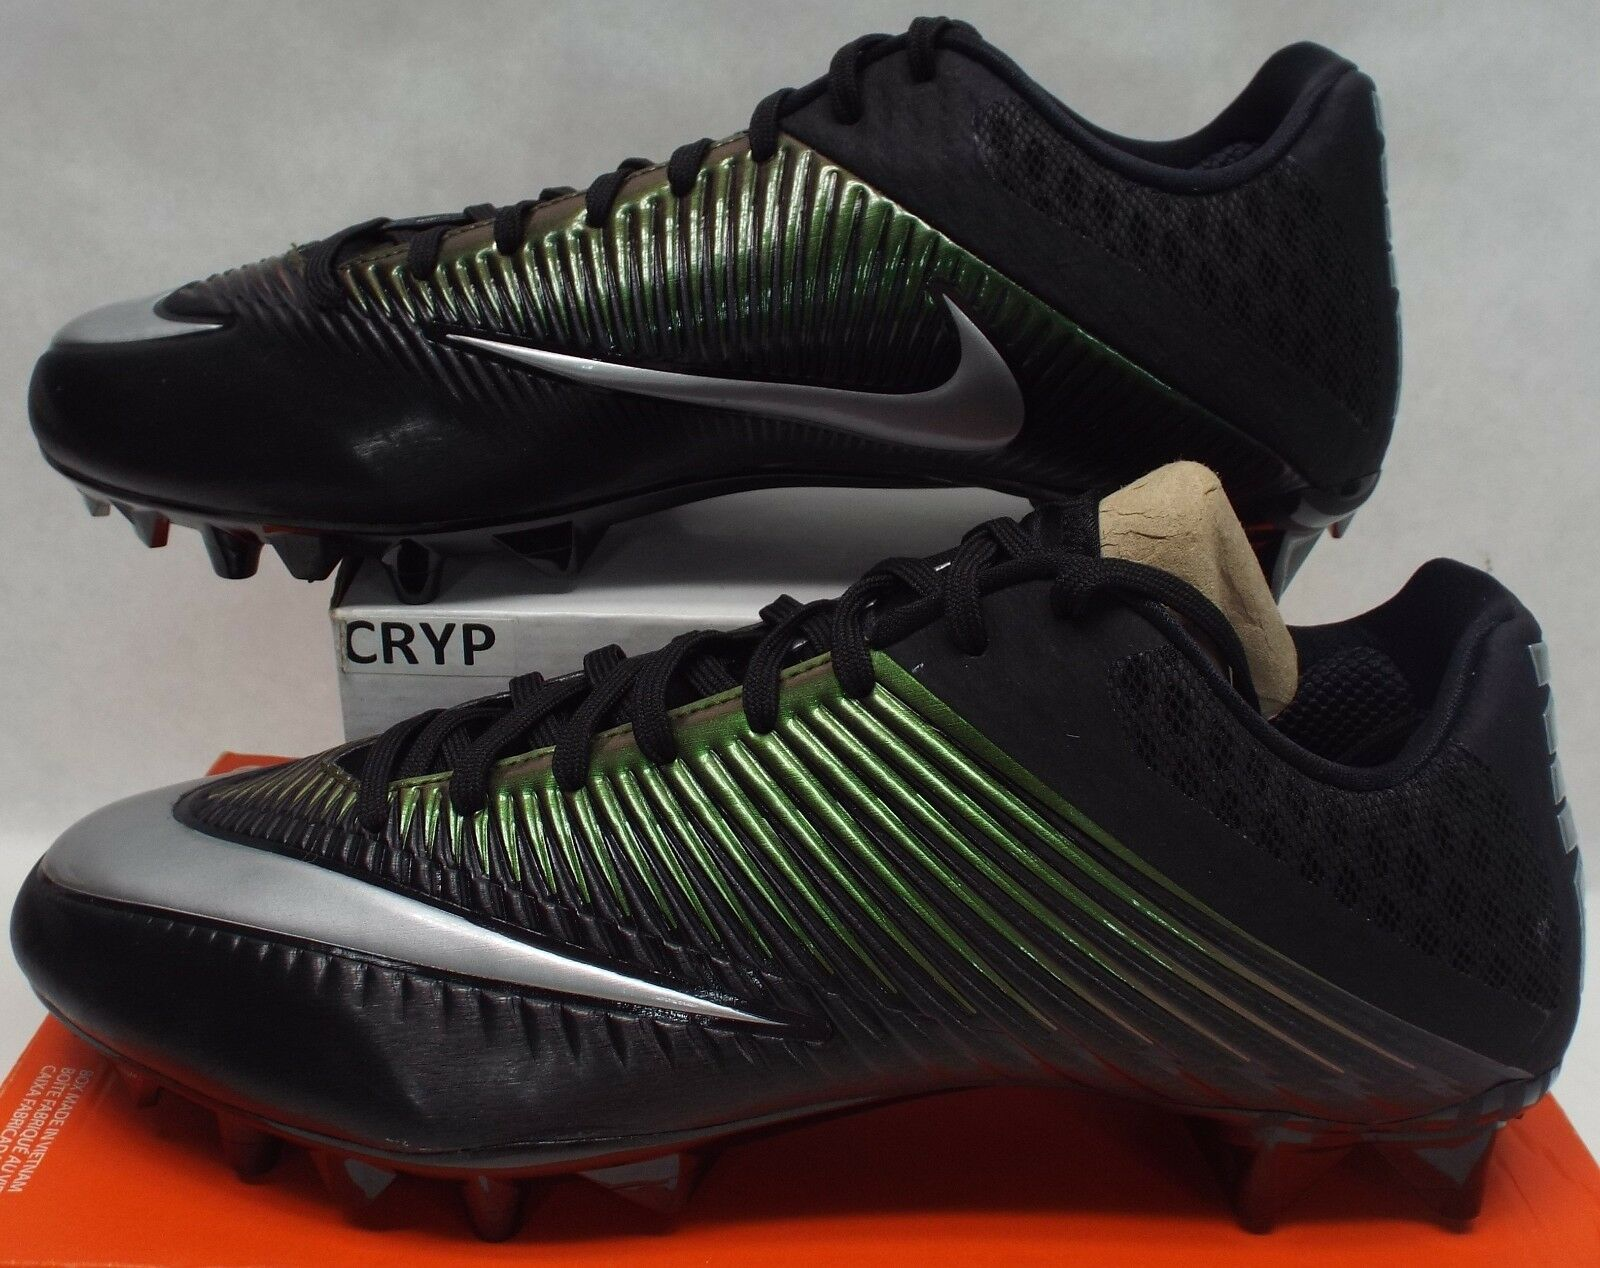 New Mens 13 NIKE Vapor Speed 2 II Low Black Cleats Shoes 105 833380-001